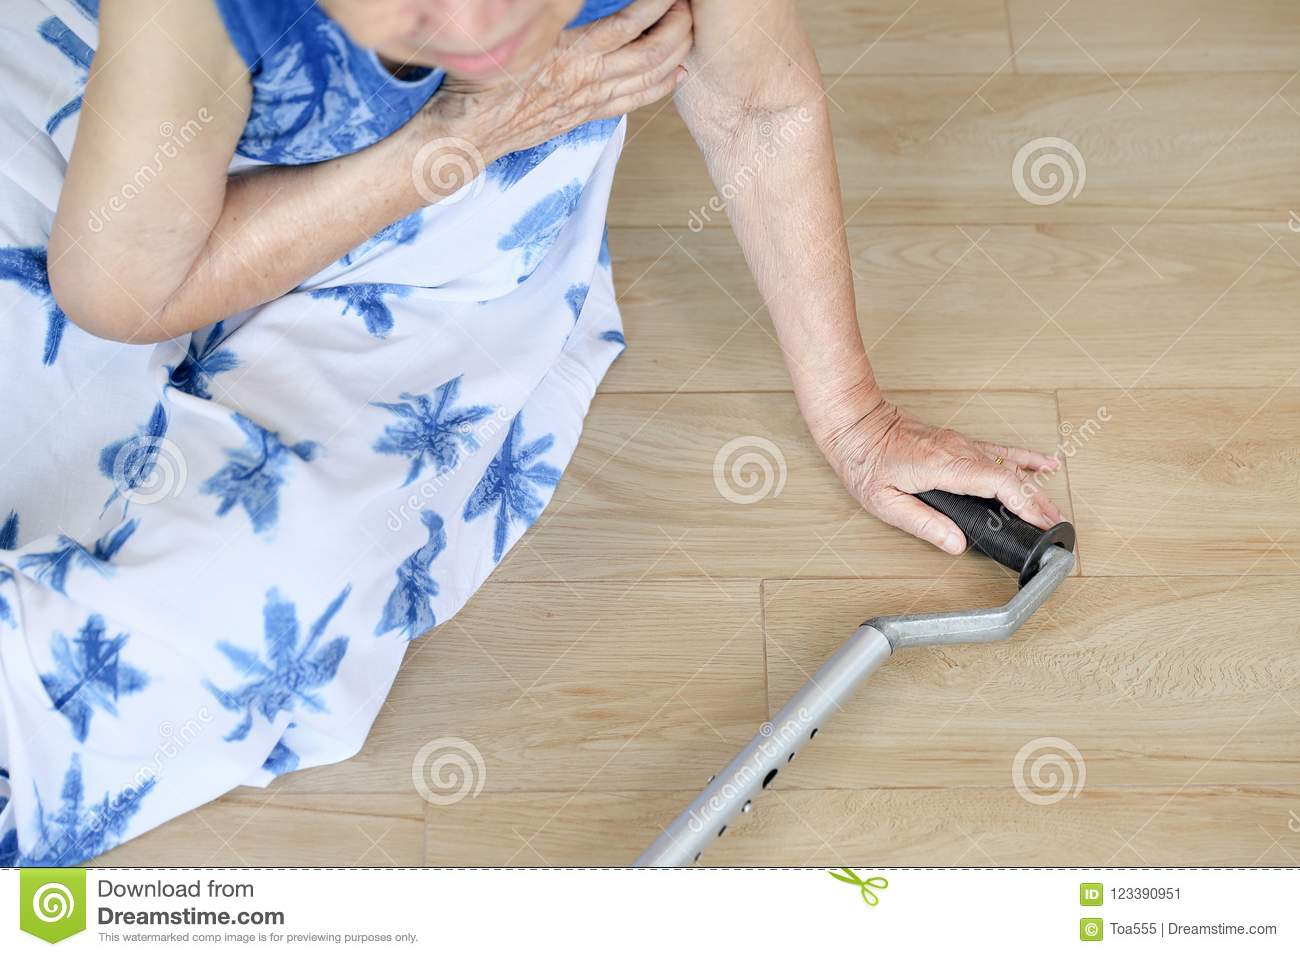 elderly woman falling down at home hearth attack stock image rh dreamstime com at home down under home depot downspout